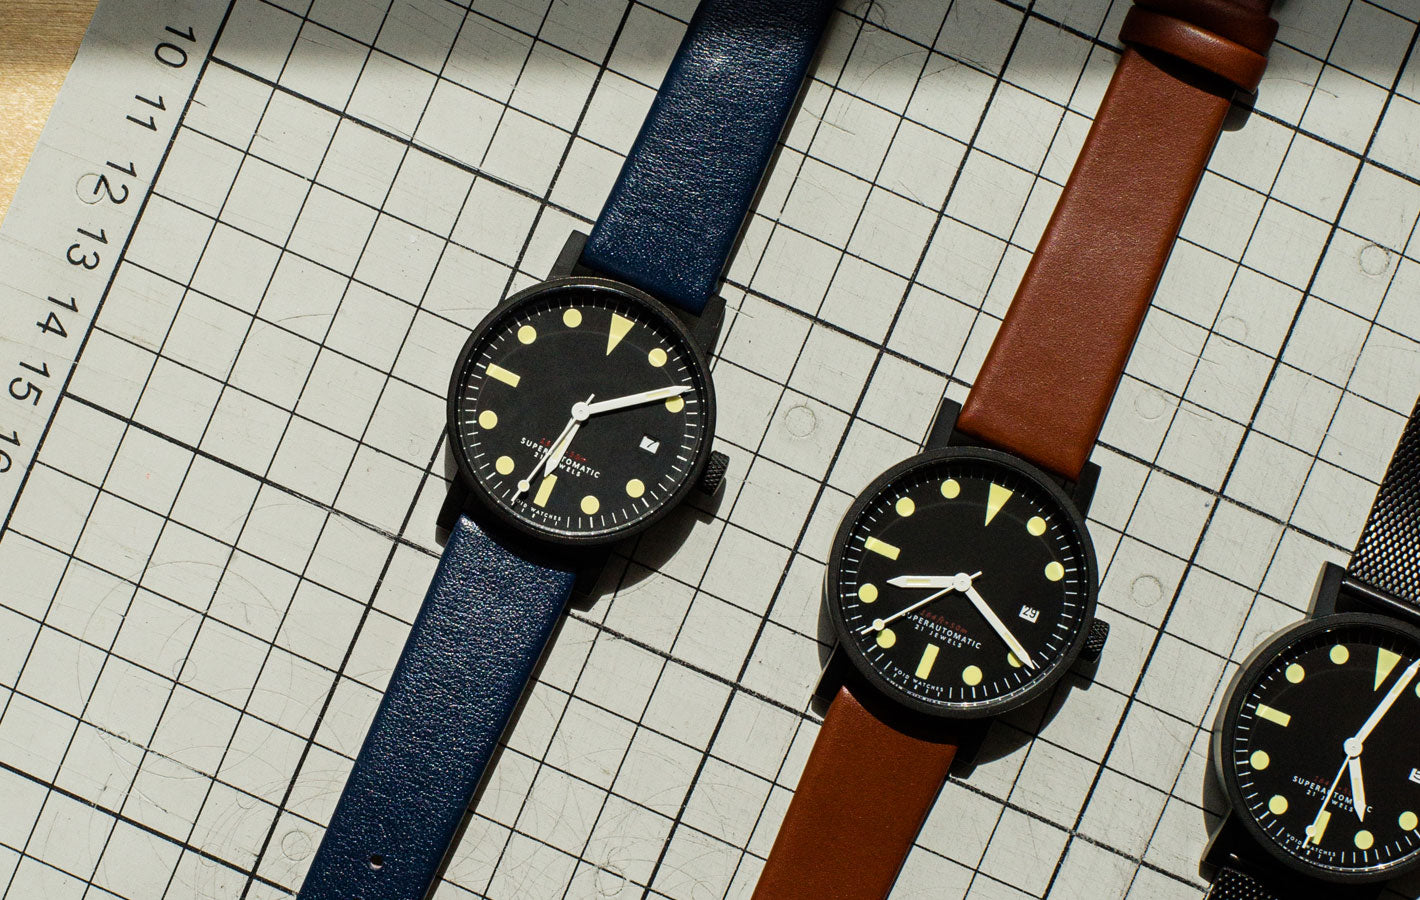 The V03M-BL/RB and V03M-BL/LB from VOID Watches, designed by David Ericsson.